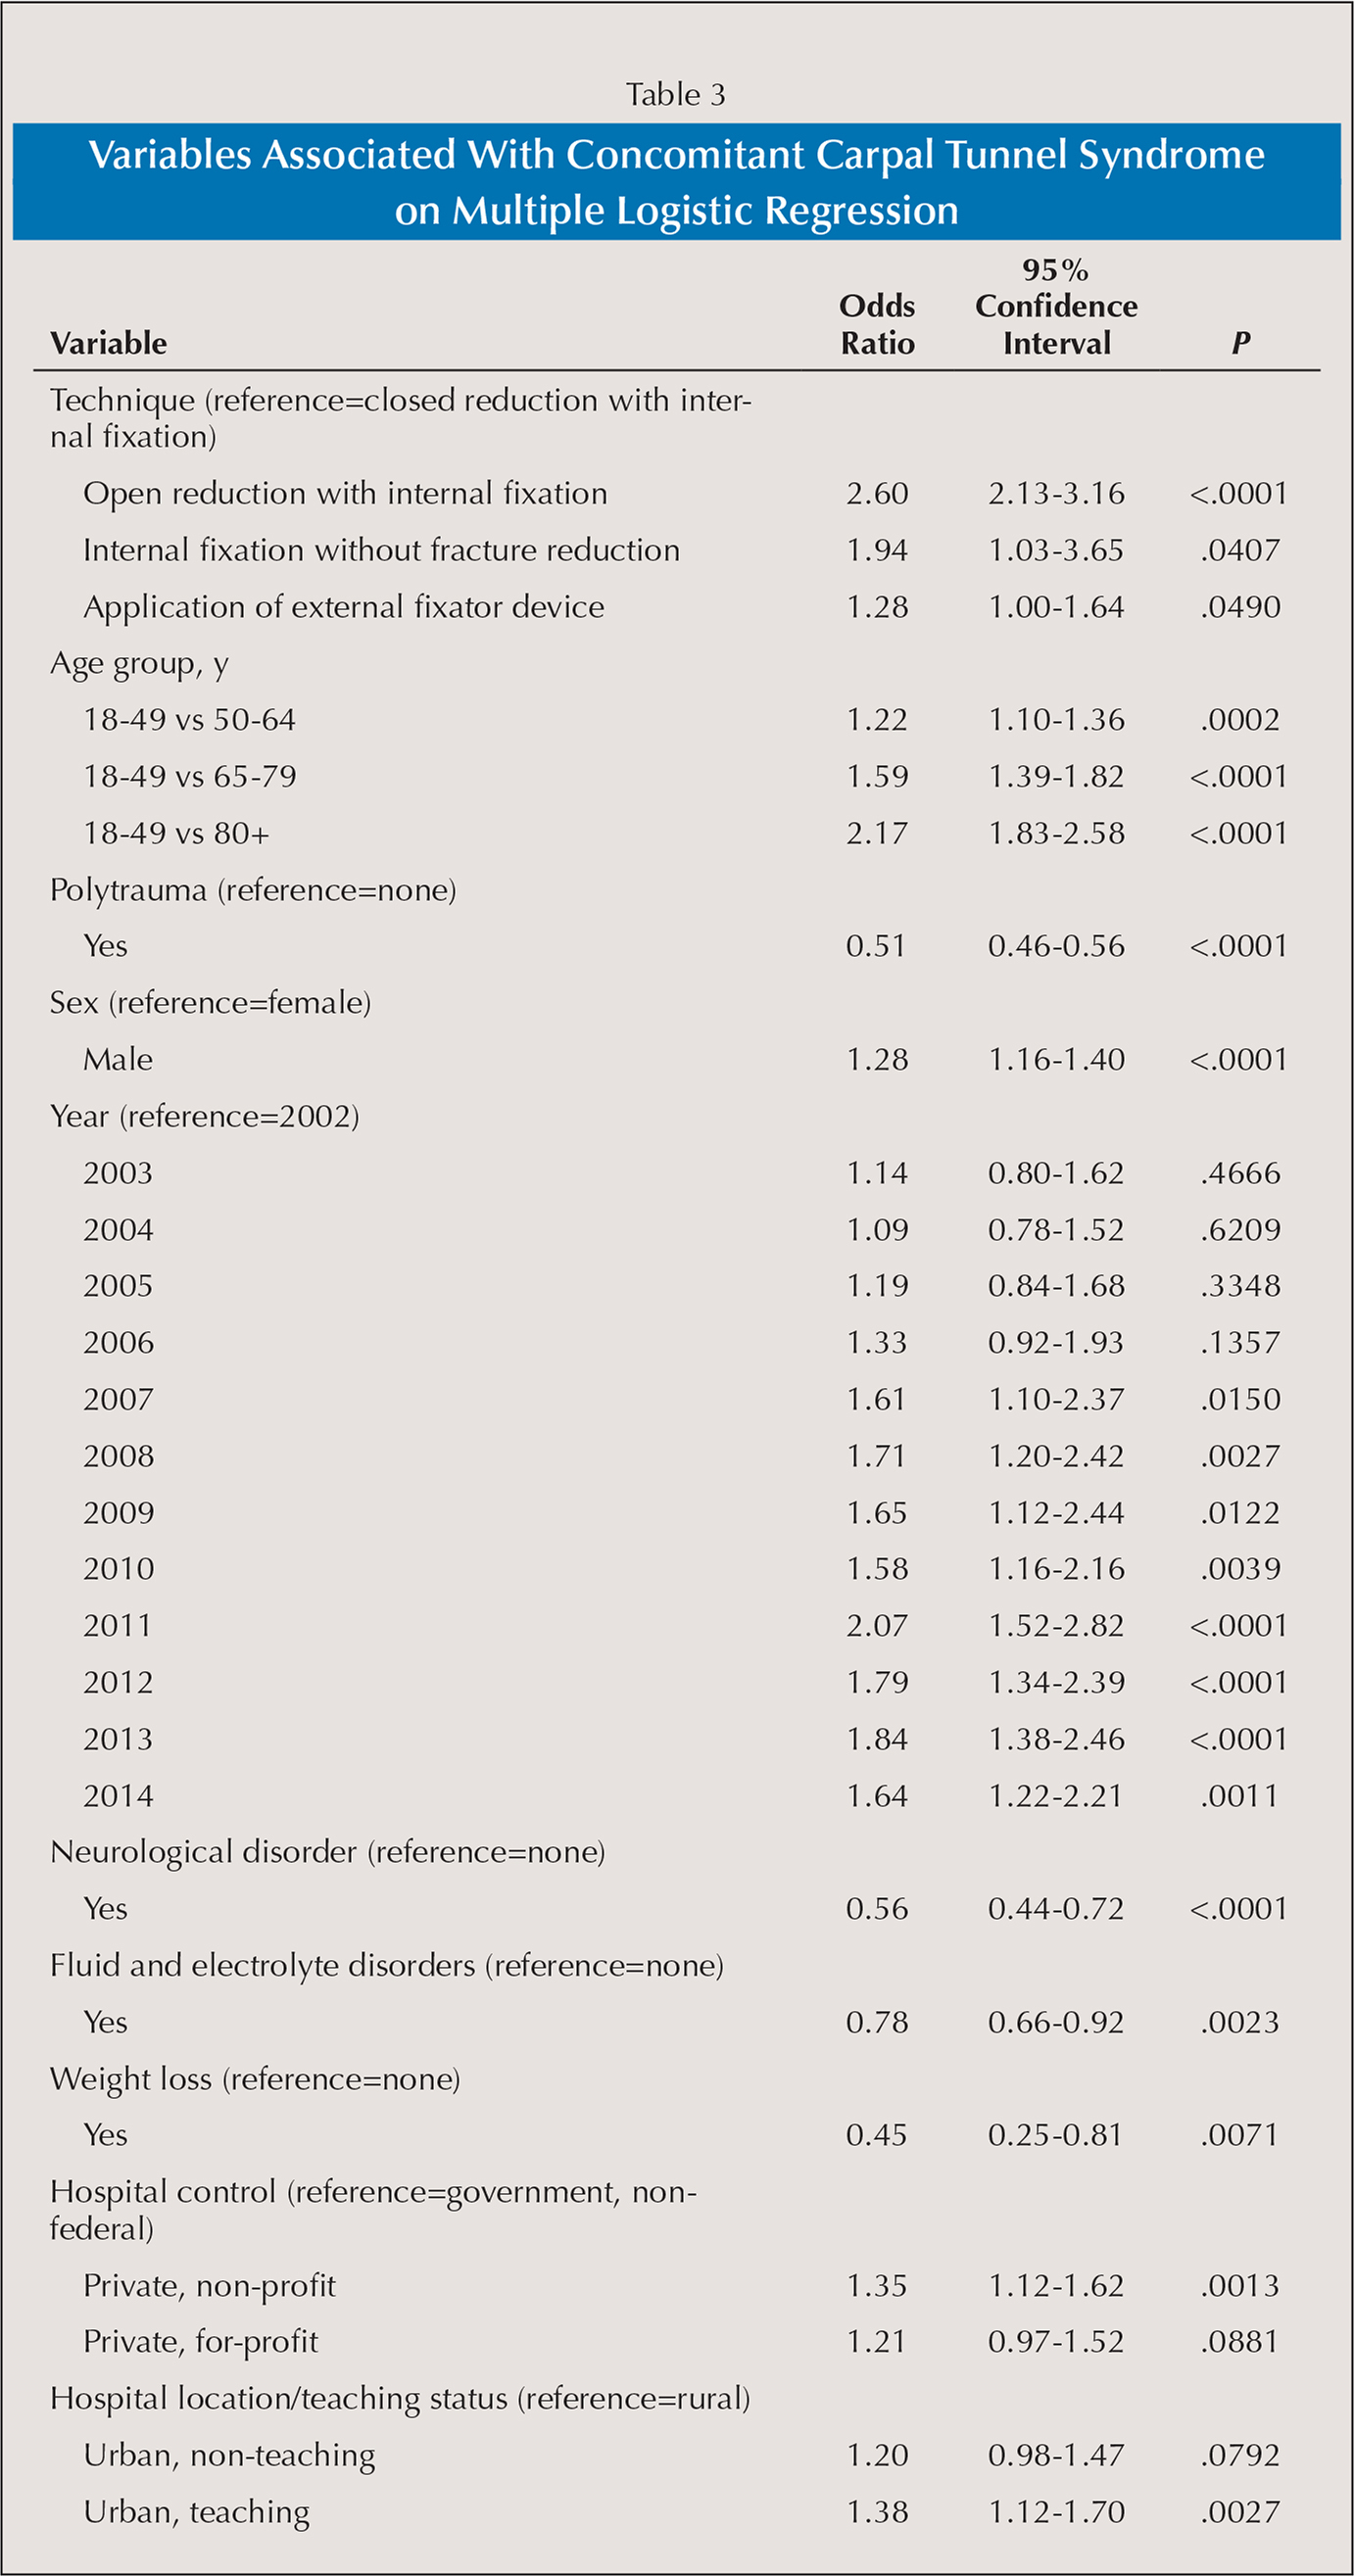 Variables Associated With Concomitant Carpal Tunnel Syndrome on Multiple Logistic Regression